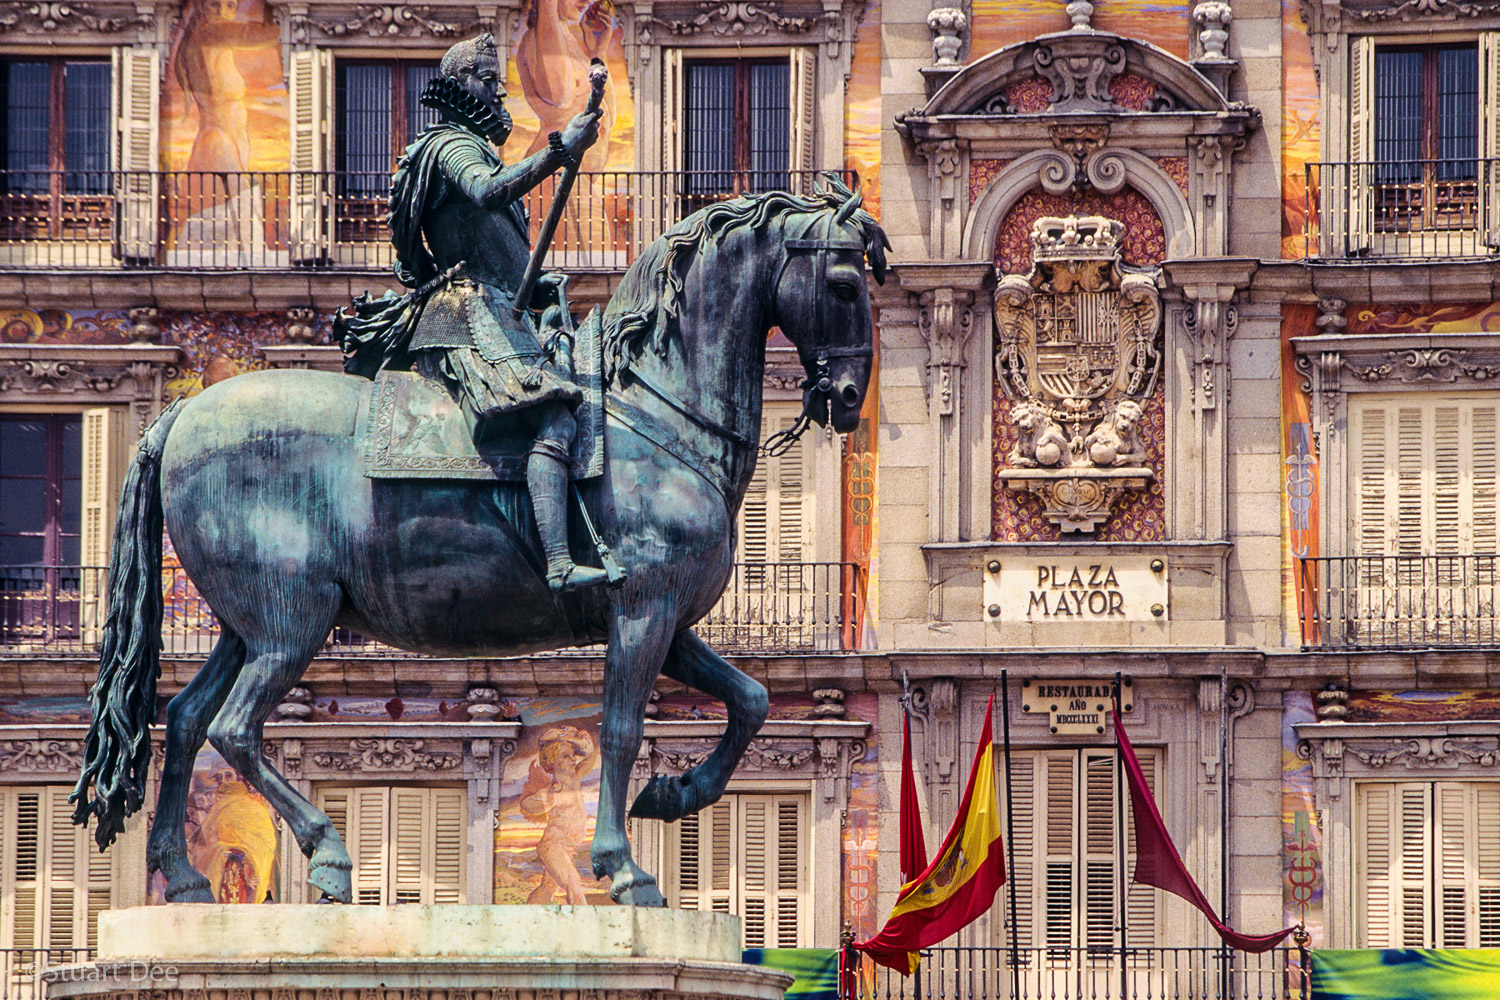 Plaza Mayor, showing equestrian statue of King Philip III (Felipe III) and colorful facade, Madrid, Spain. Plaza Mayor is one of the landmarks of Madrid.